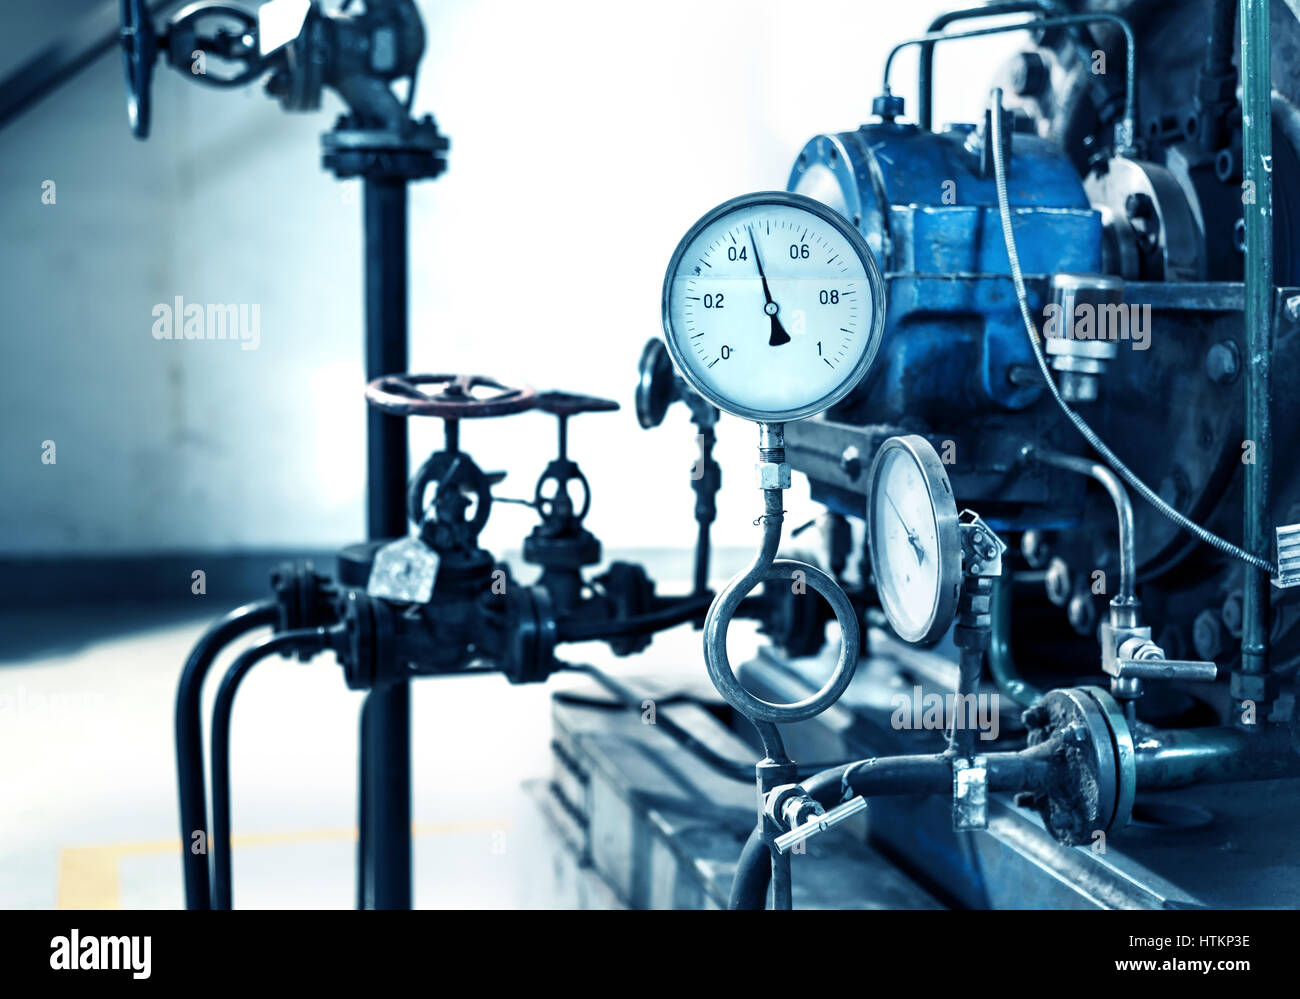 Closeup of manometer, pipes and faucet valves of heating system in a ...